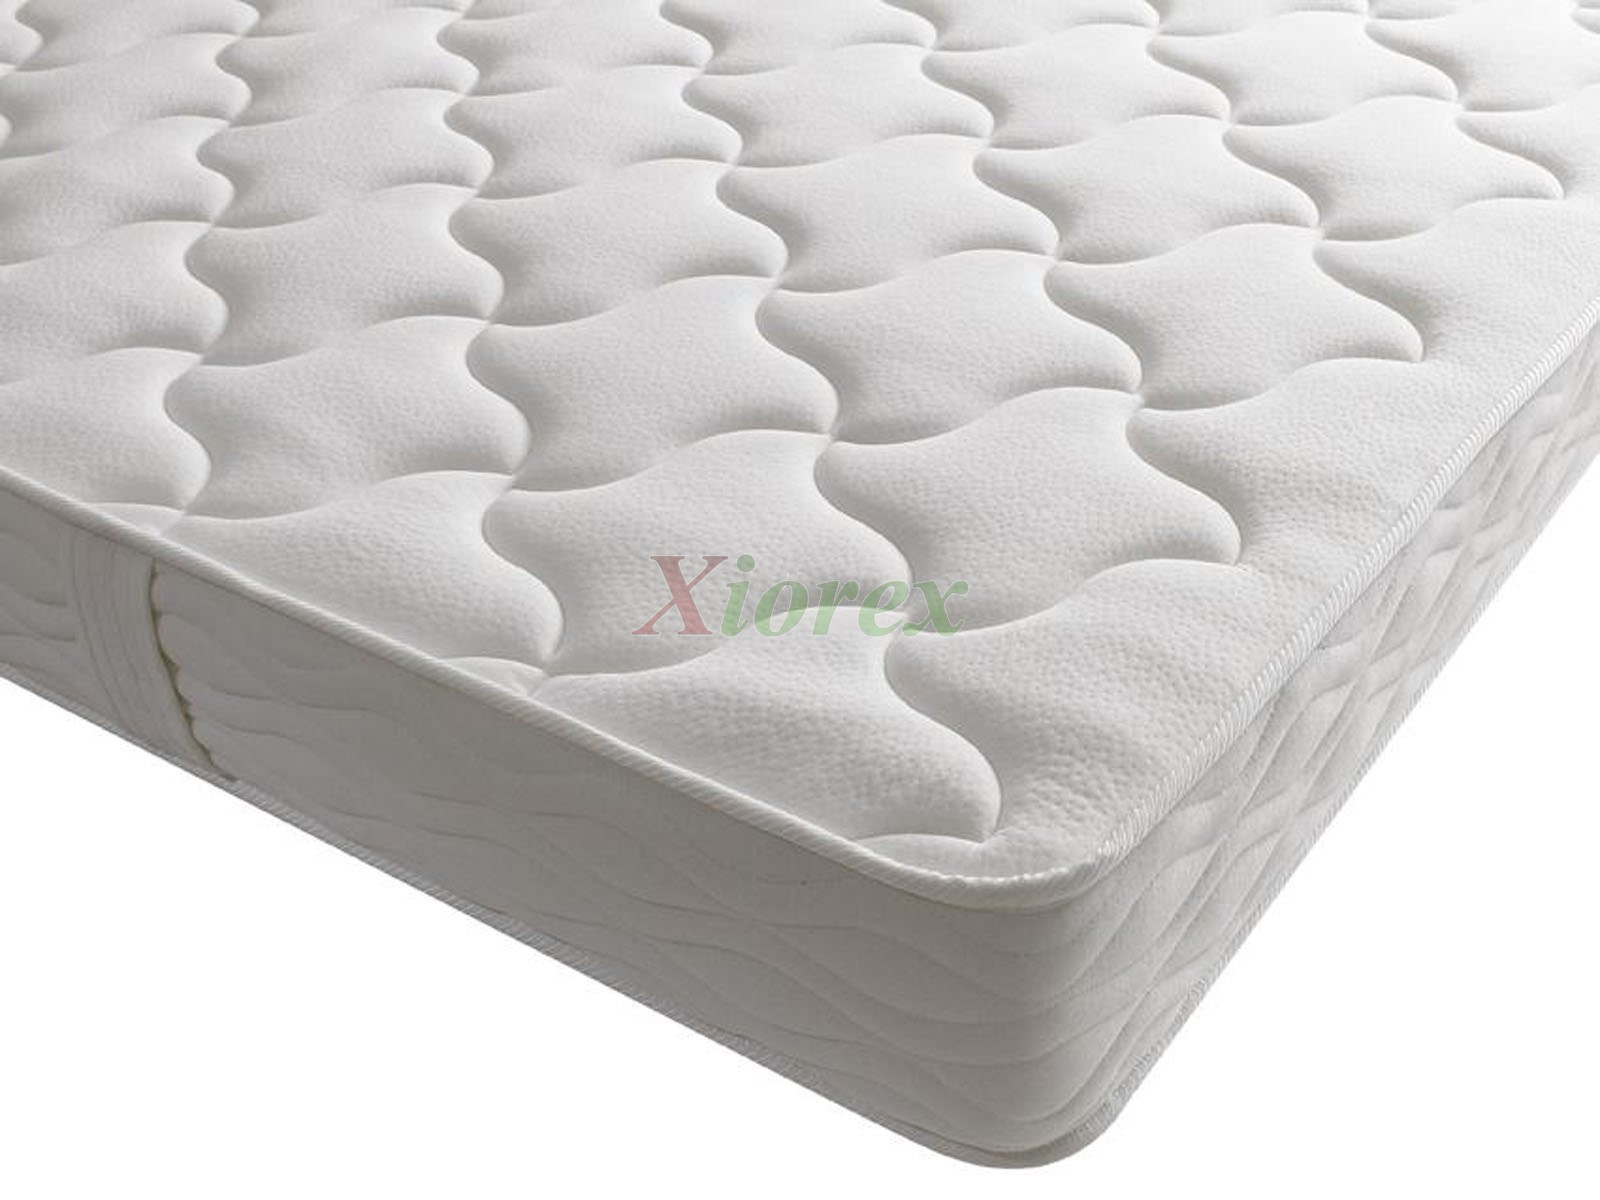 Orion Foam Mattress Comfortable Foam Mattress By Gautier Xiorex